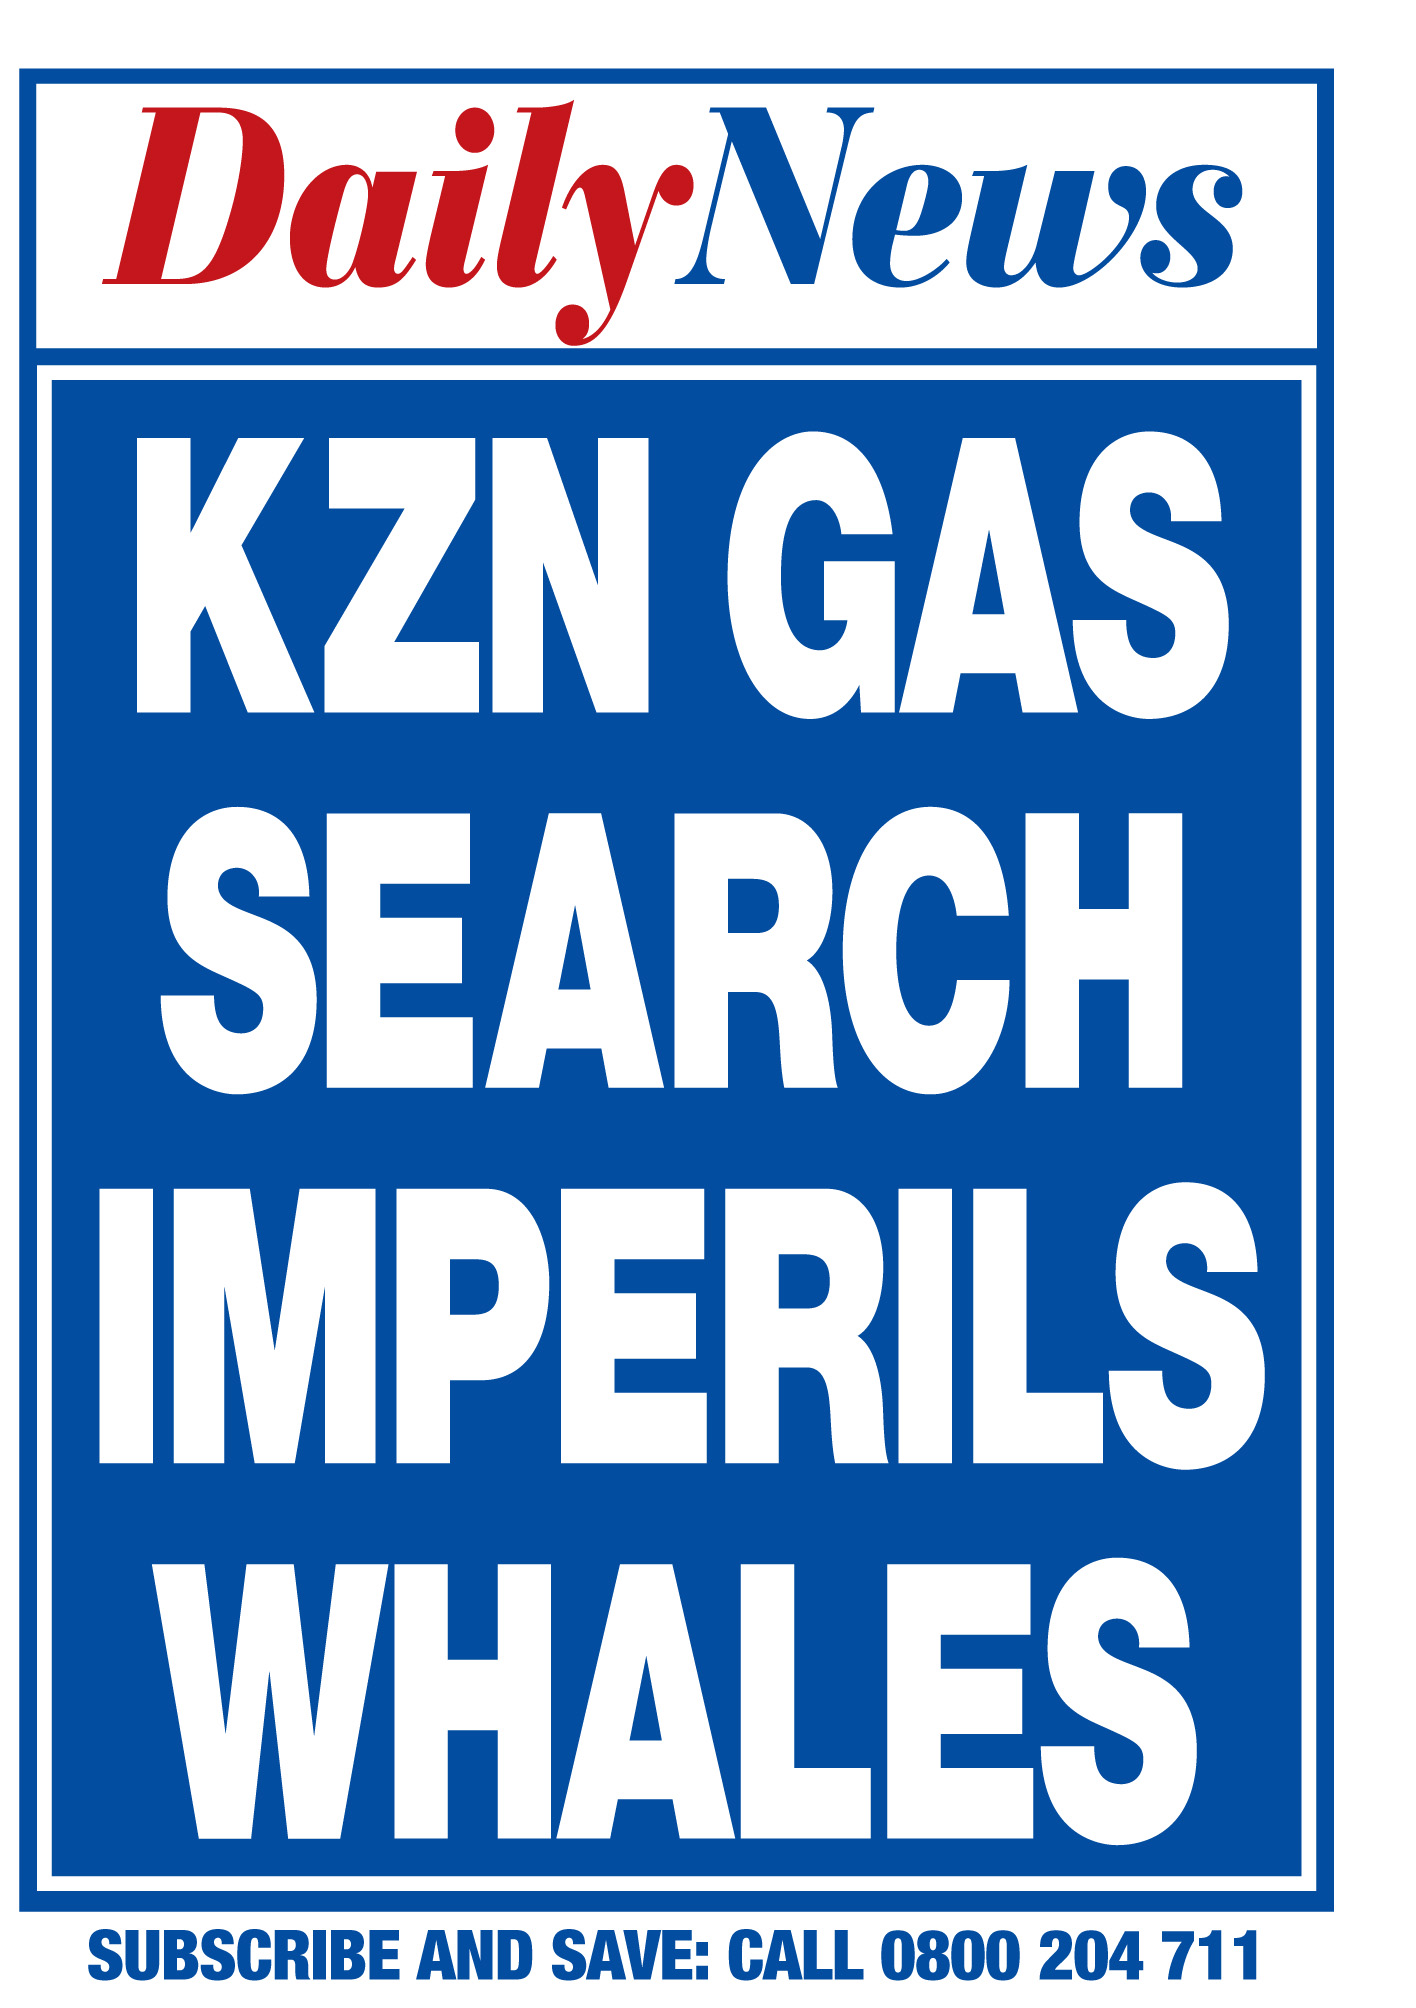 kzn-gas-exploits